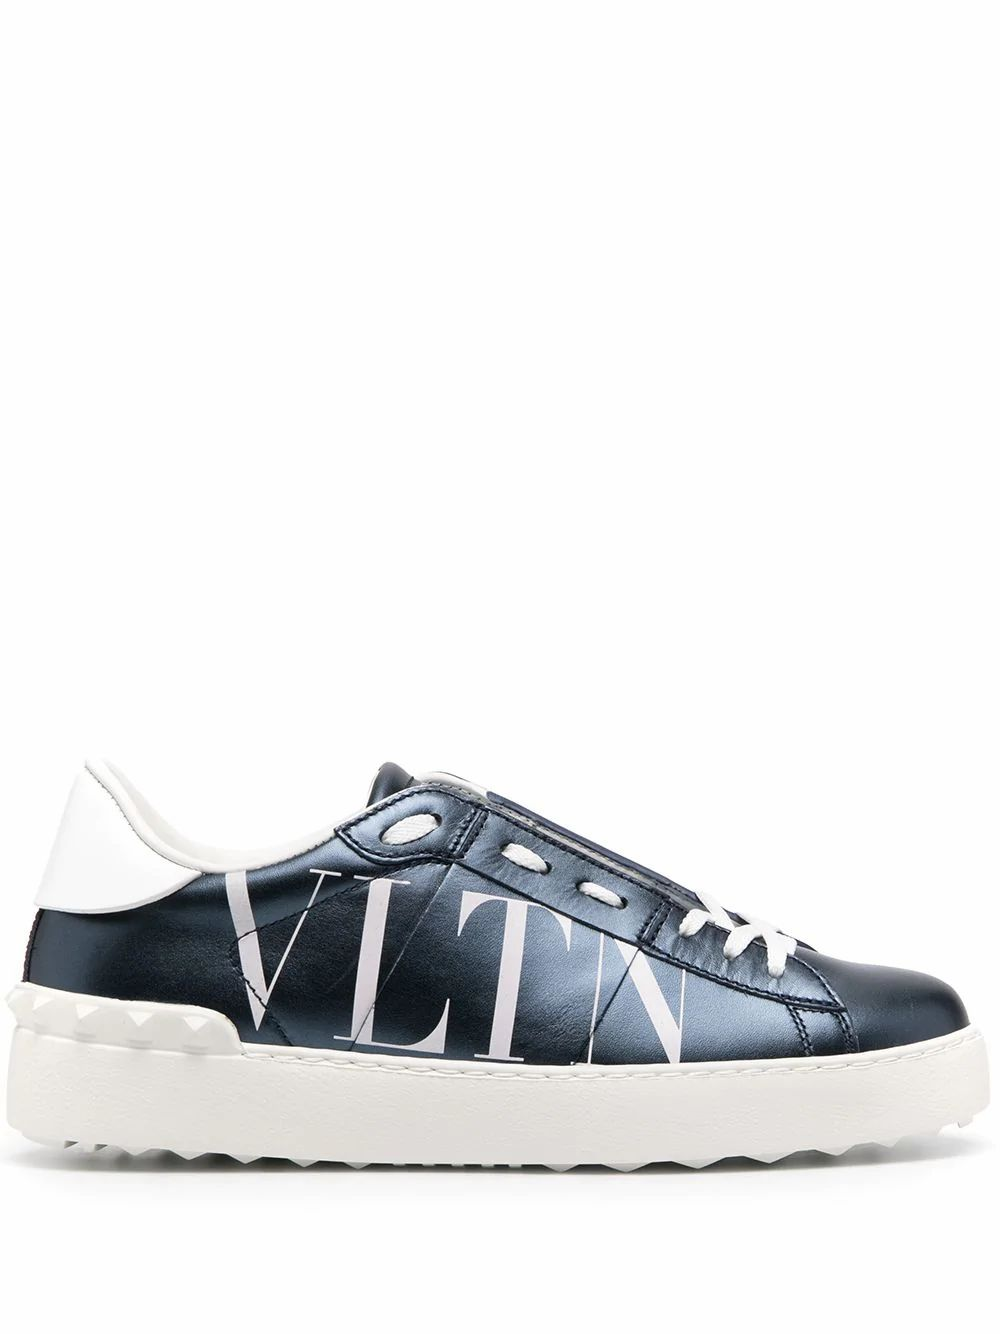 VALENTINO VALENTINO GARAVANI WOMEN'S BLUE LEATHER SNEAKERS